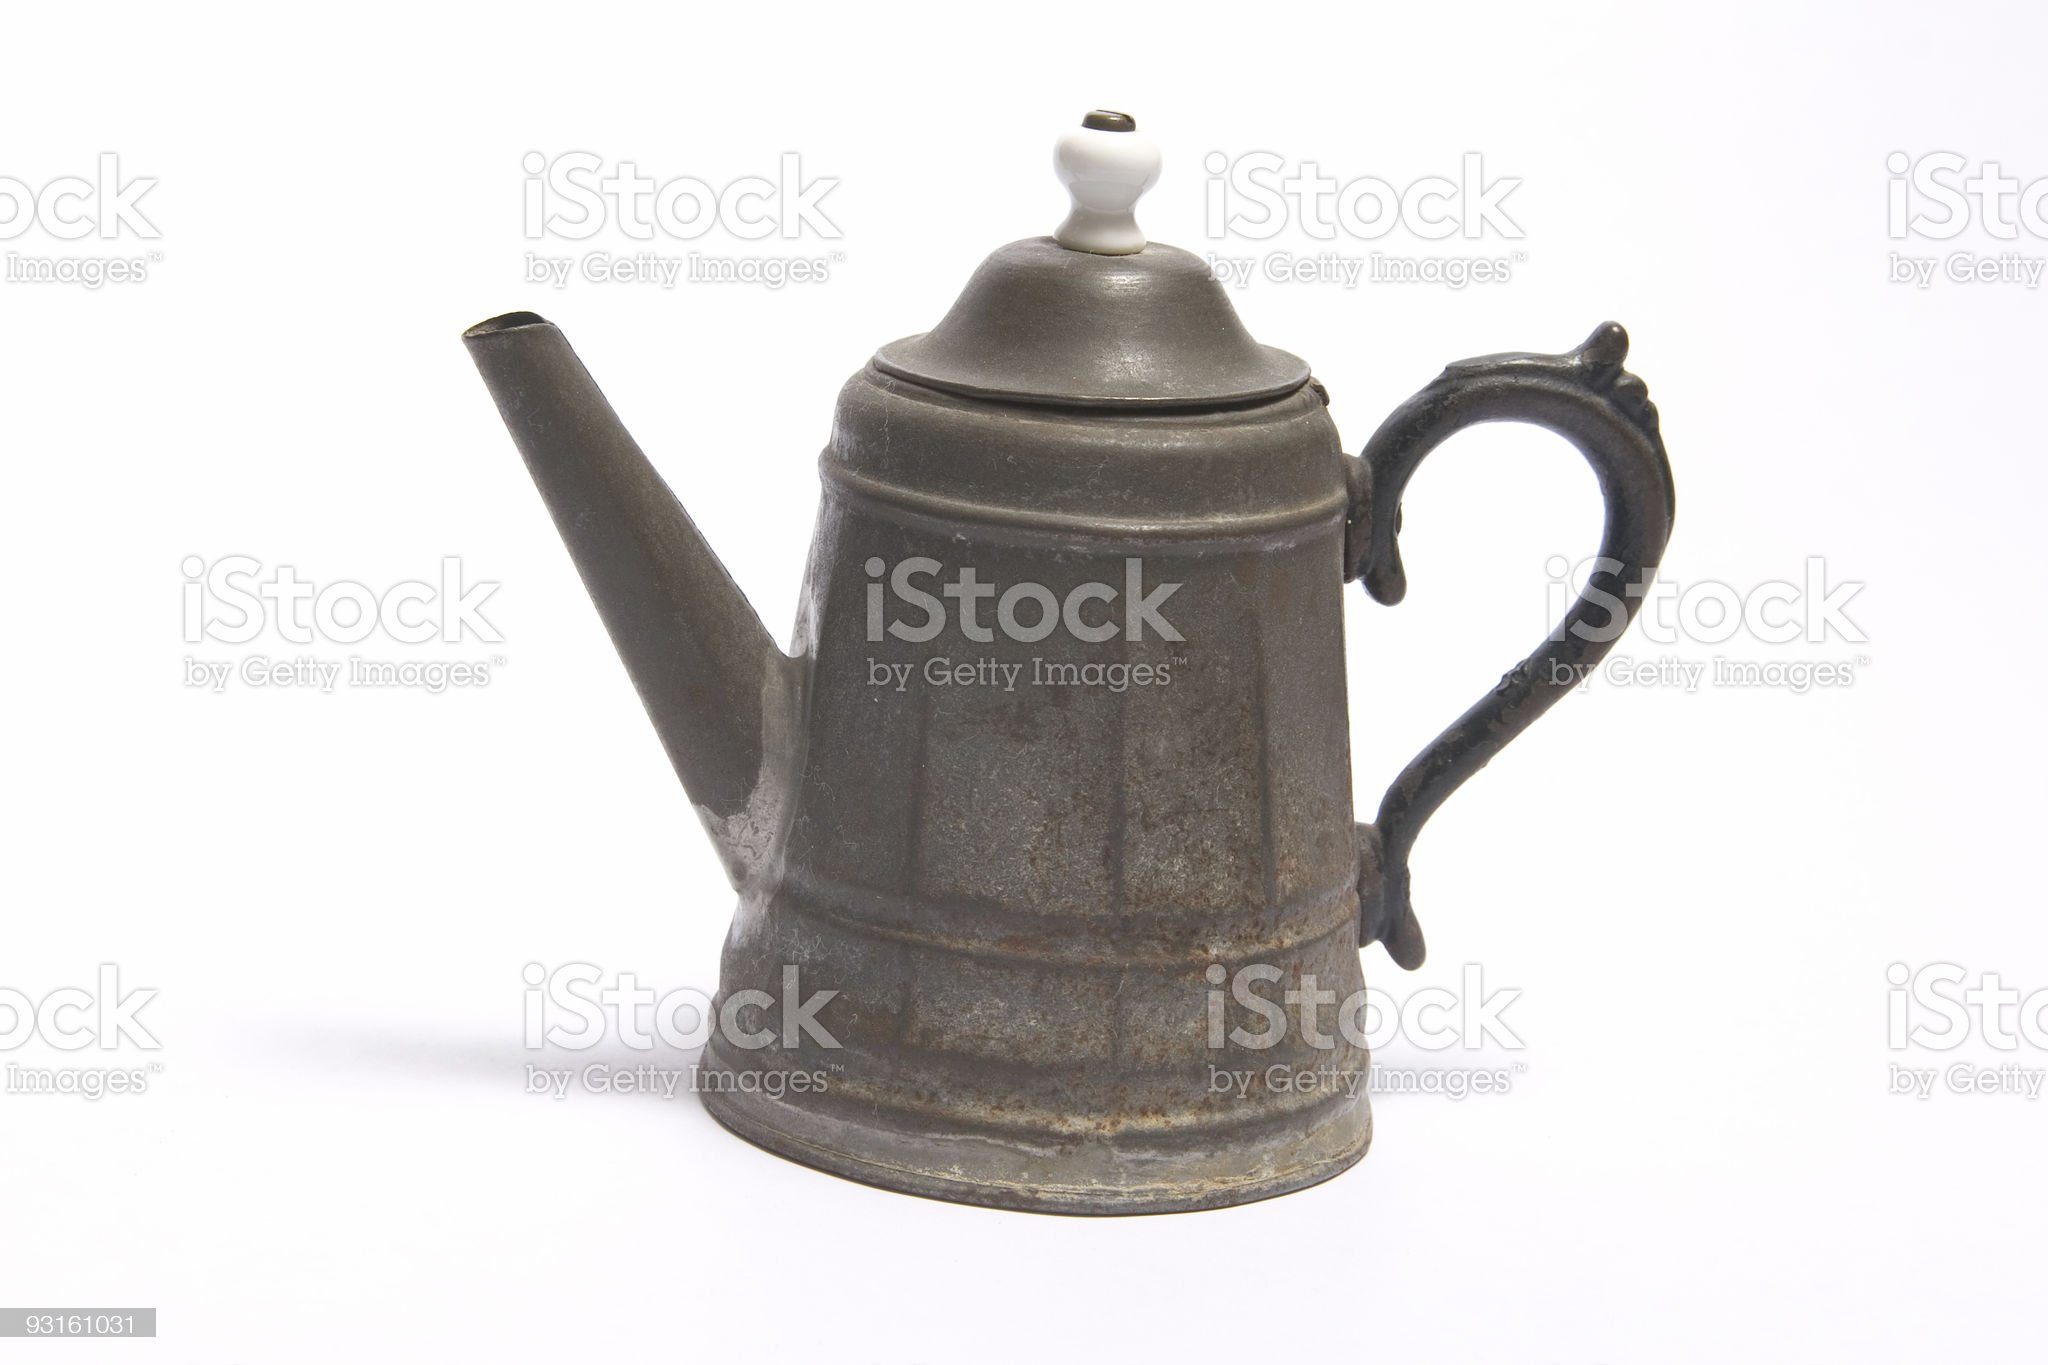 Antique Tea Kettle royalty-free stock photo